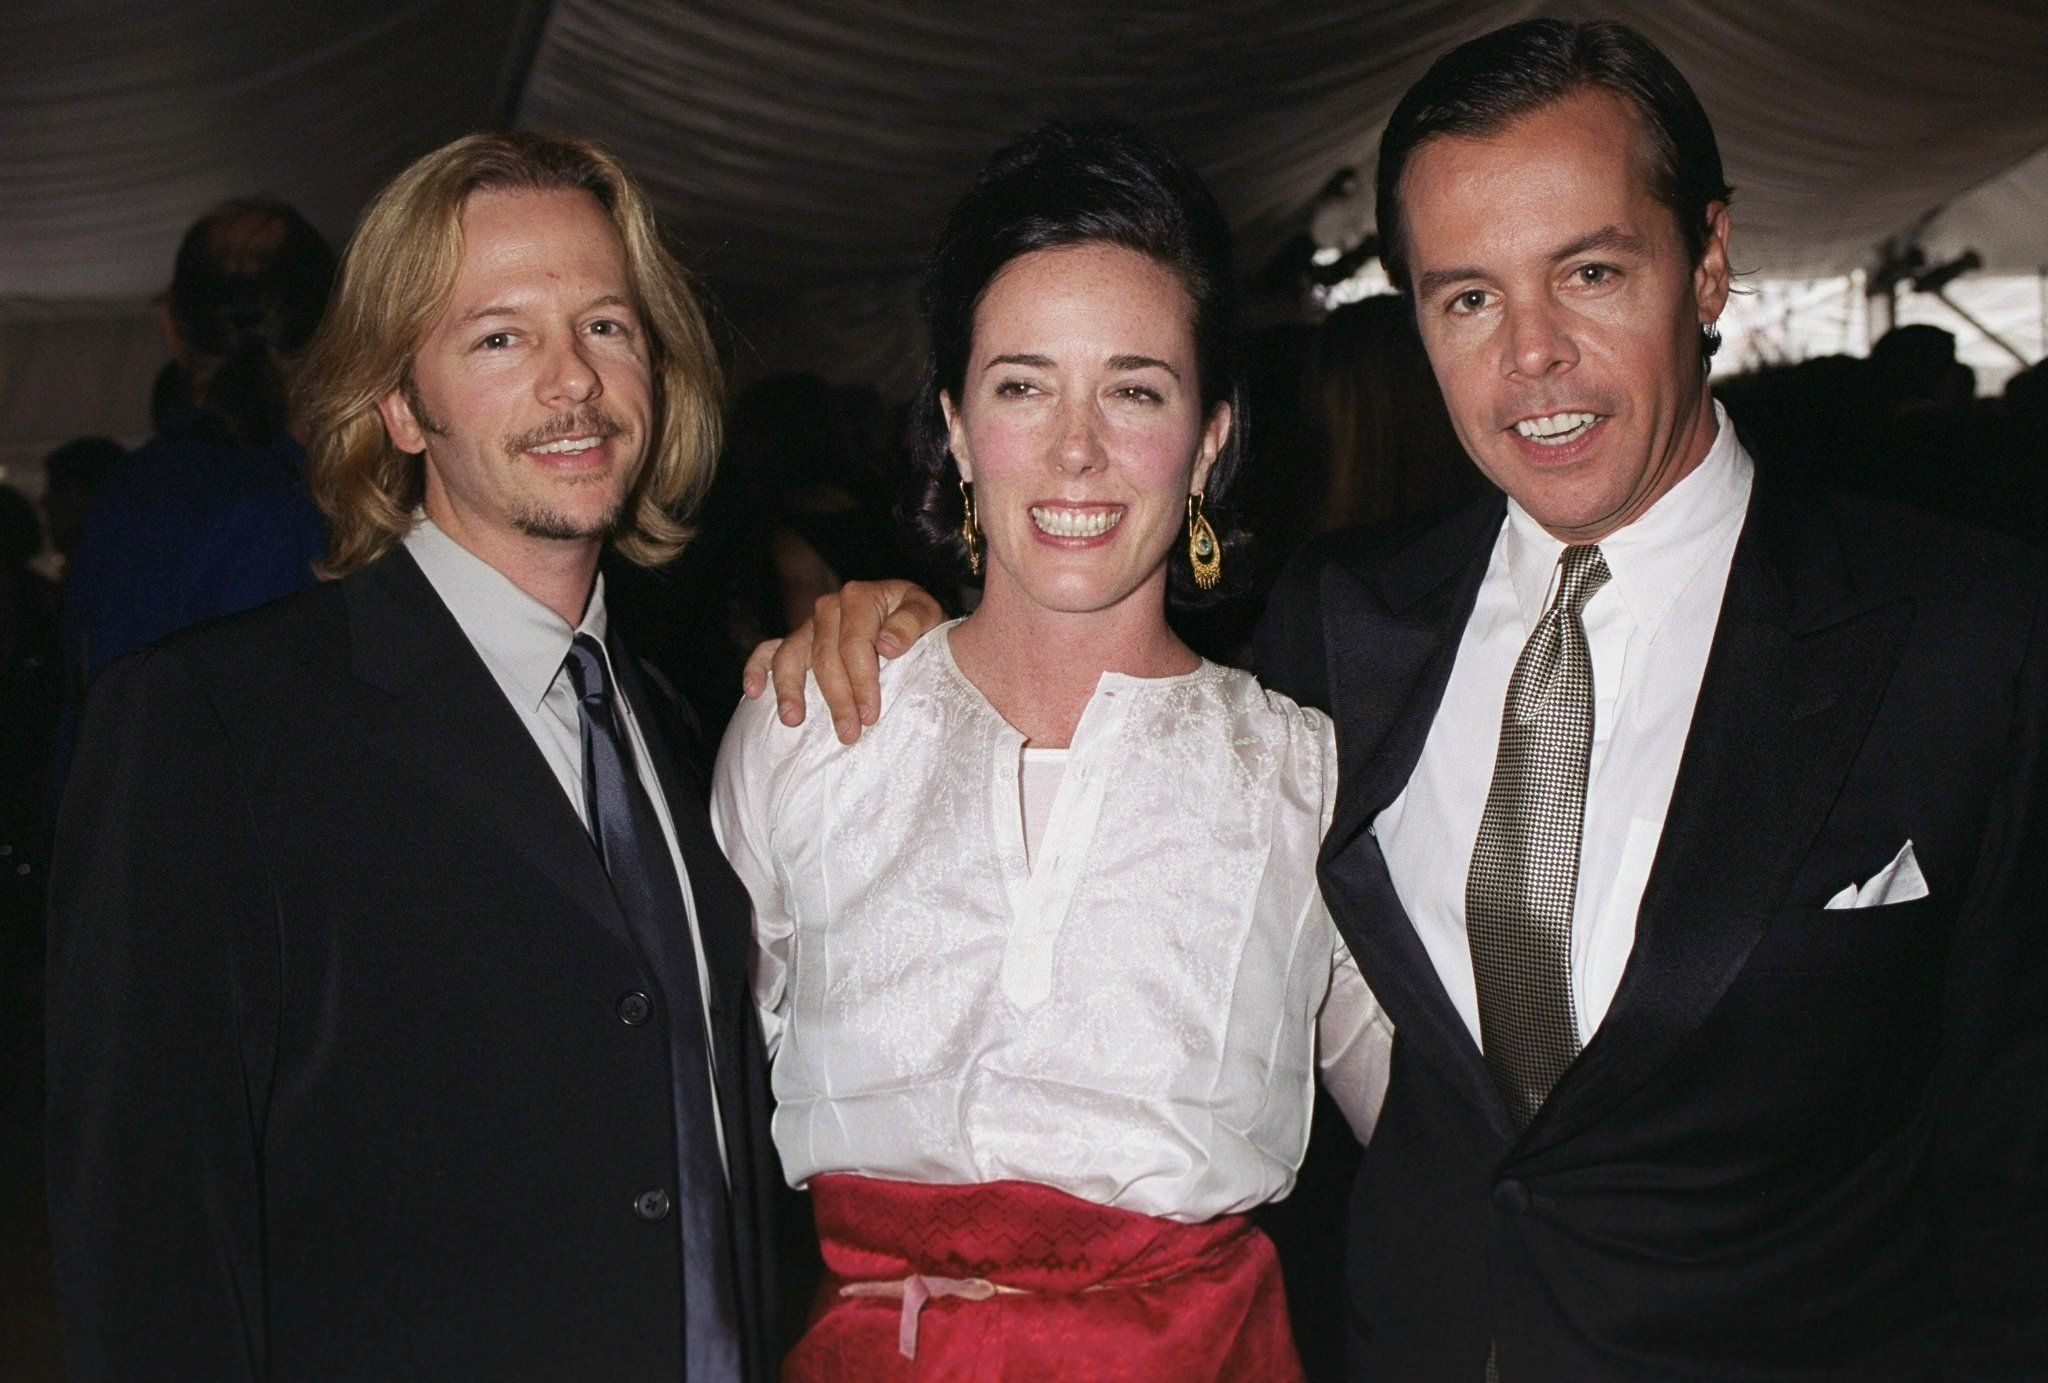 David Spade Mourns Sister-In-Law Kate Spade's Death With Touching